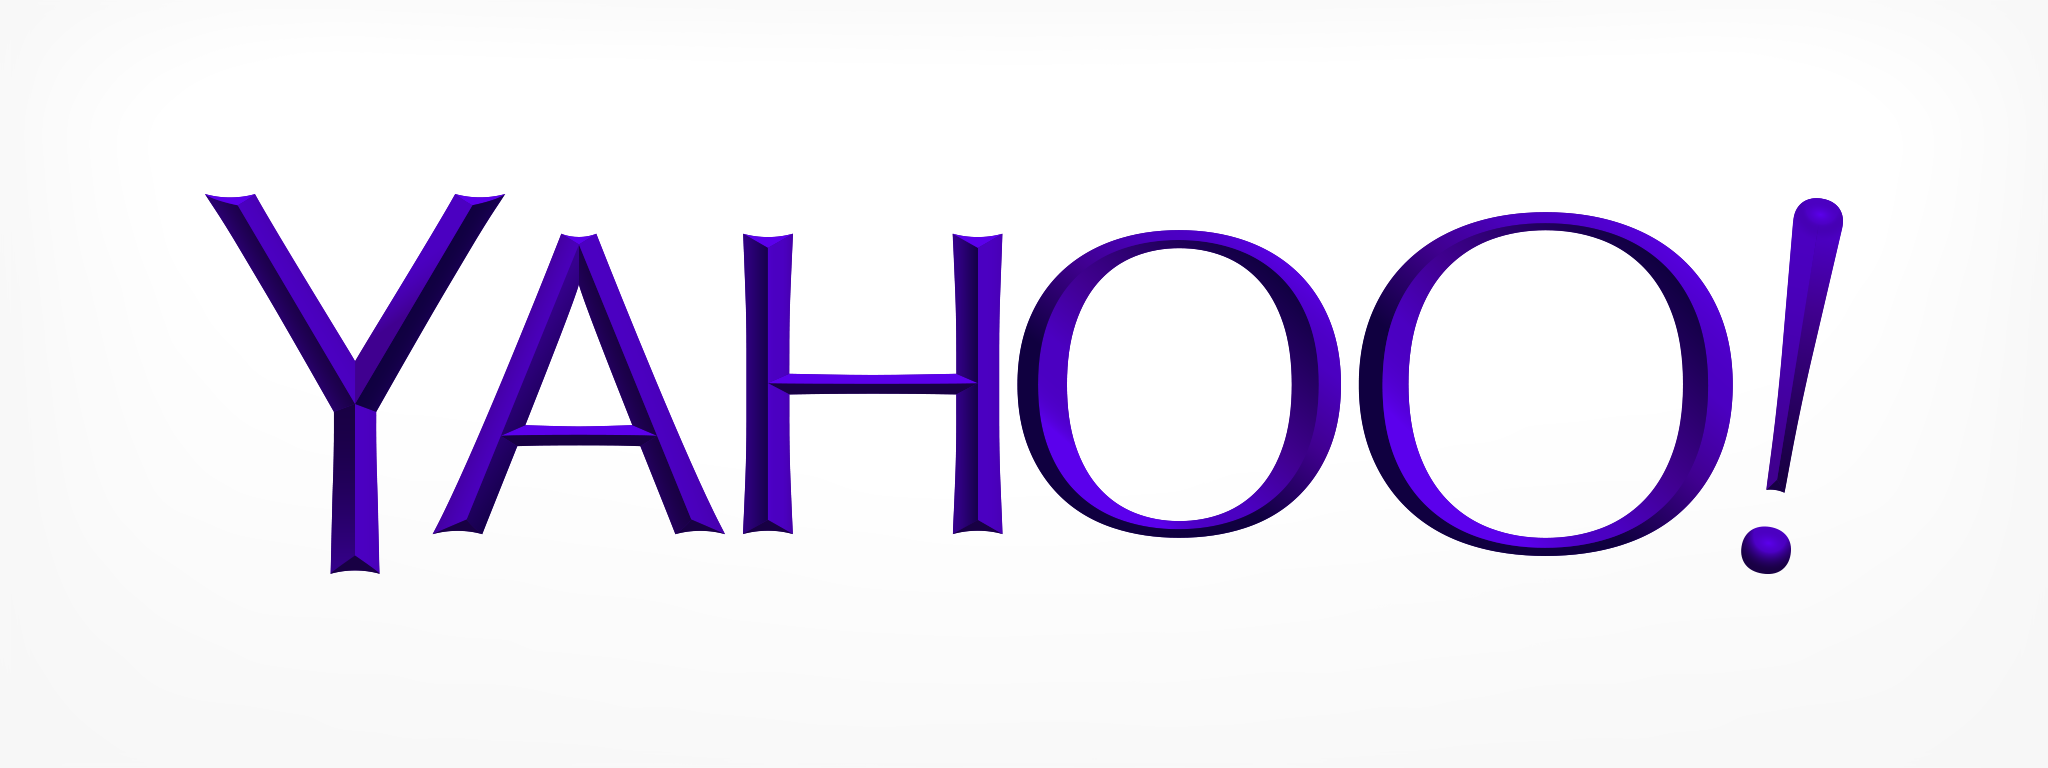 Beleggen via internet in Yahoo